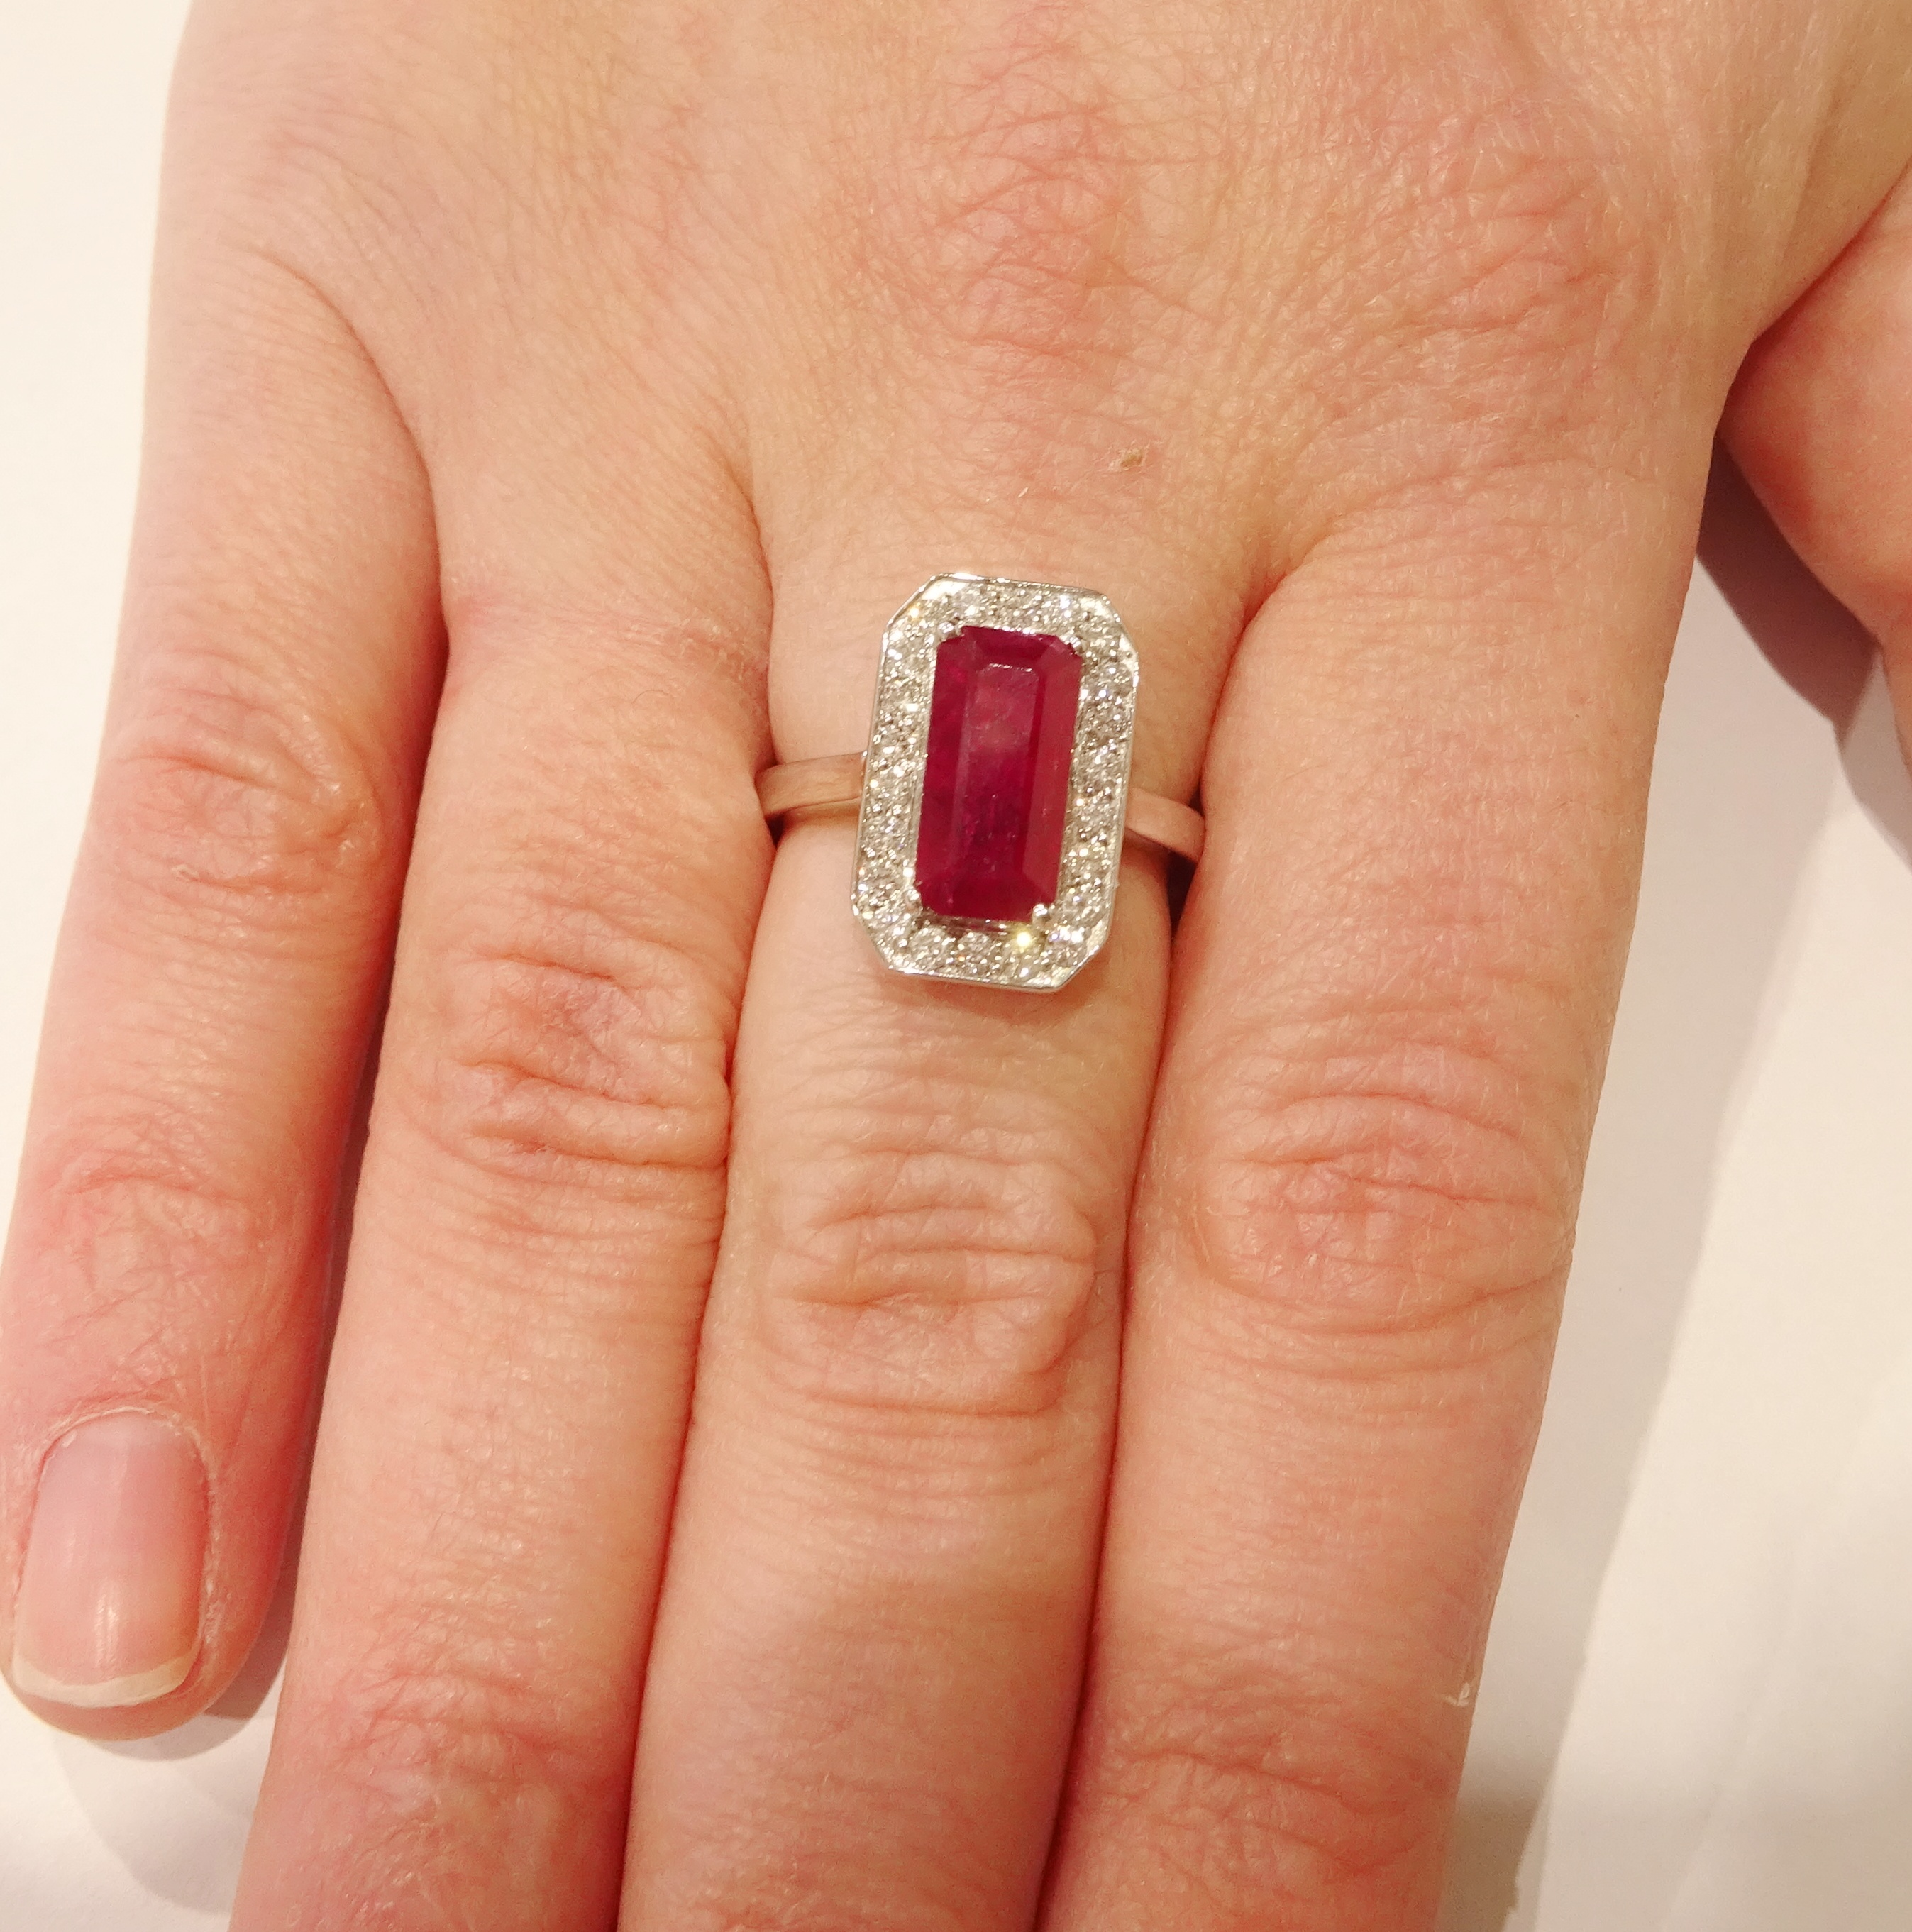 Lot 1027 - 18ct white gold emerald cut ruby and round brilliant cut diamond cluster ring, hallmarked,